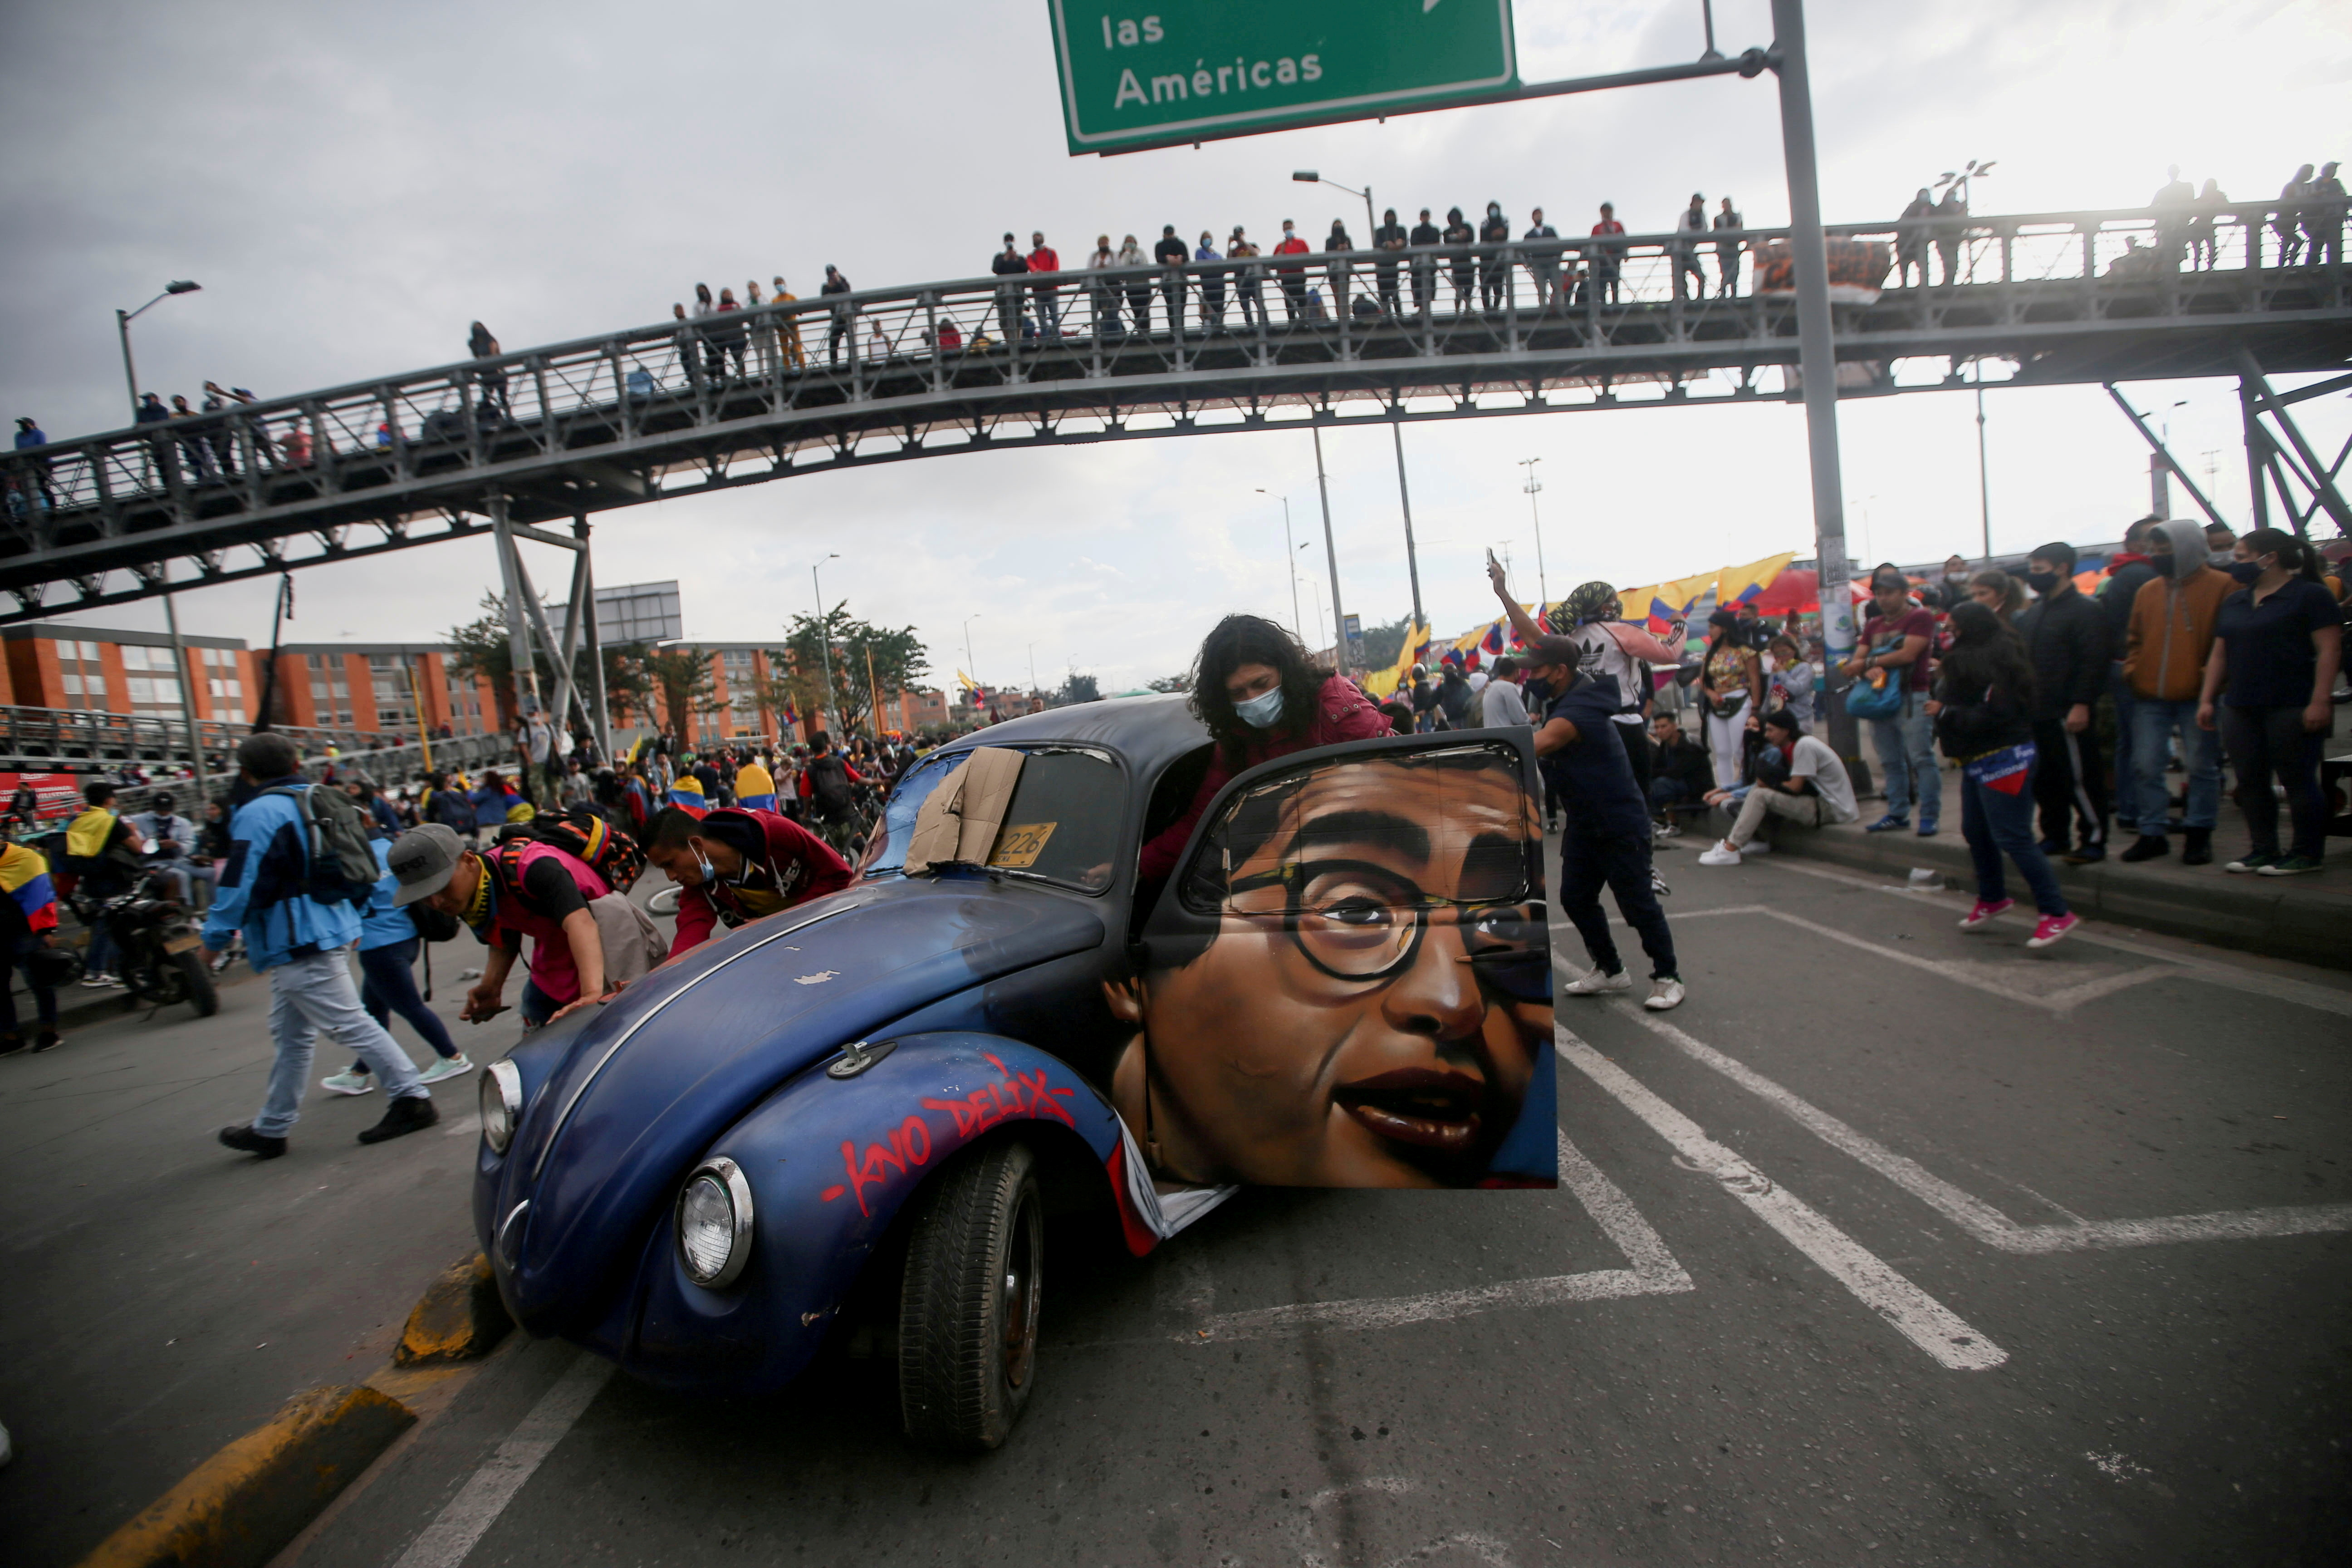 People push a car with the image of late Colombian humorist and journalist Jaime Garzon painted on it during a protest demanding government action to tackle poverty, police violence and inequalities in healthcare and education systems, in Bogota, Colombia,  June 2, 2021. REUTERS/Luisa Gonzalez/File Photo